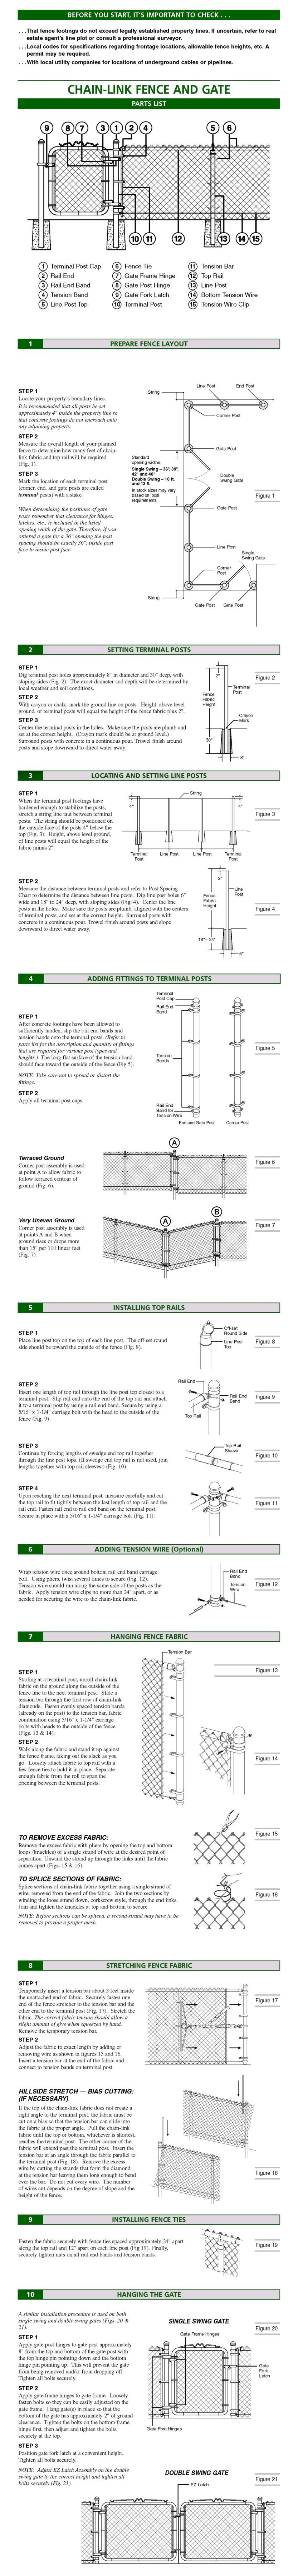 Chain Link Instructions image